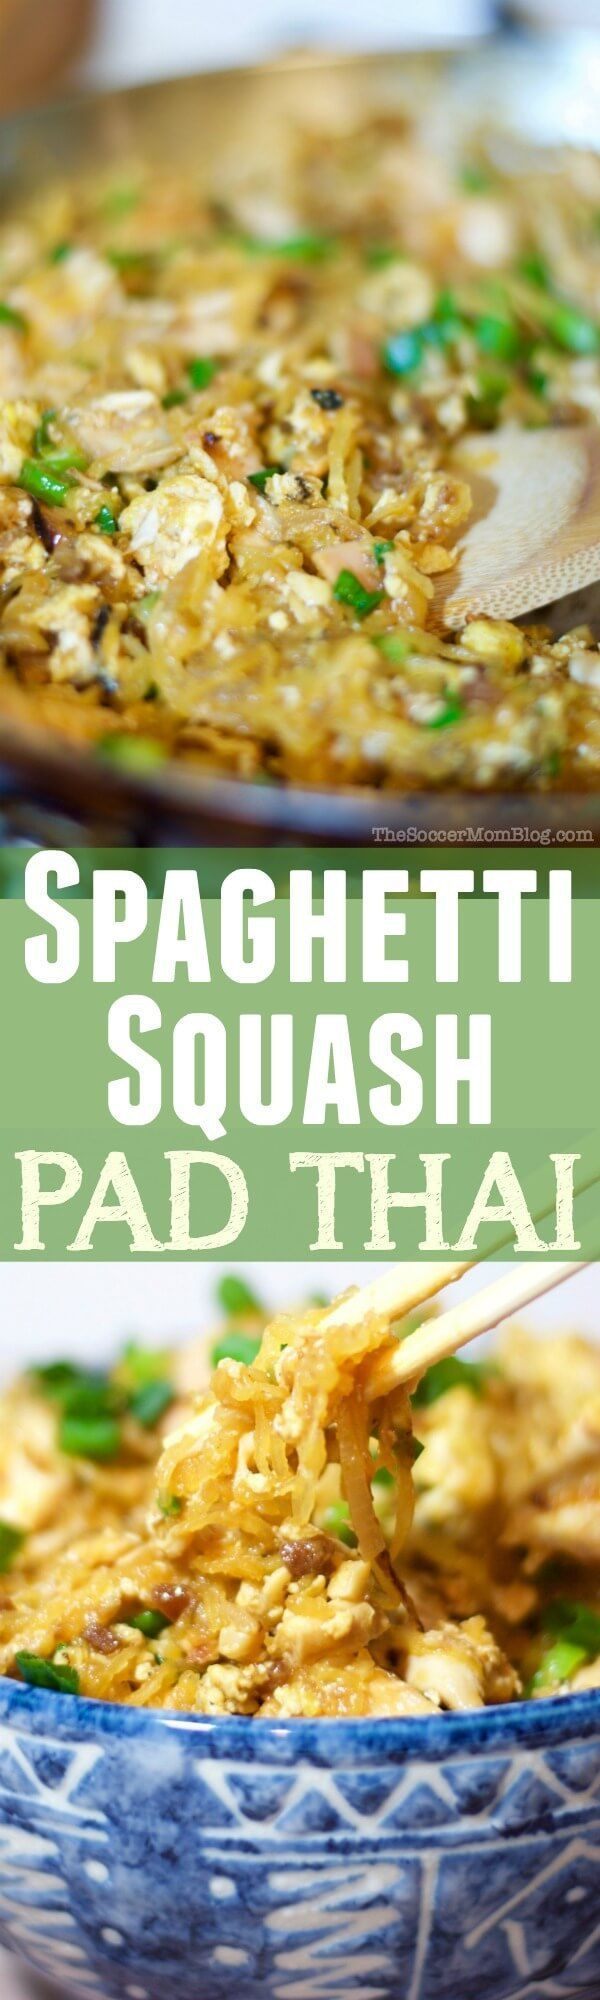 A healthy Spaghetti Squash Pad Thai recipe that tastes so amazing, you'd almost swear it's the real thing! (gluten free & paleo option included)